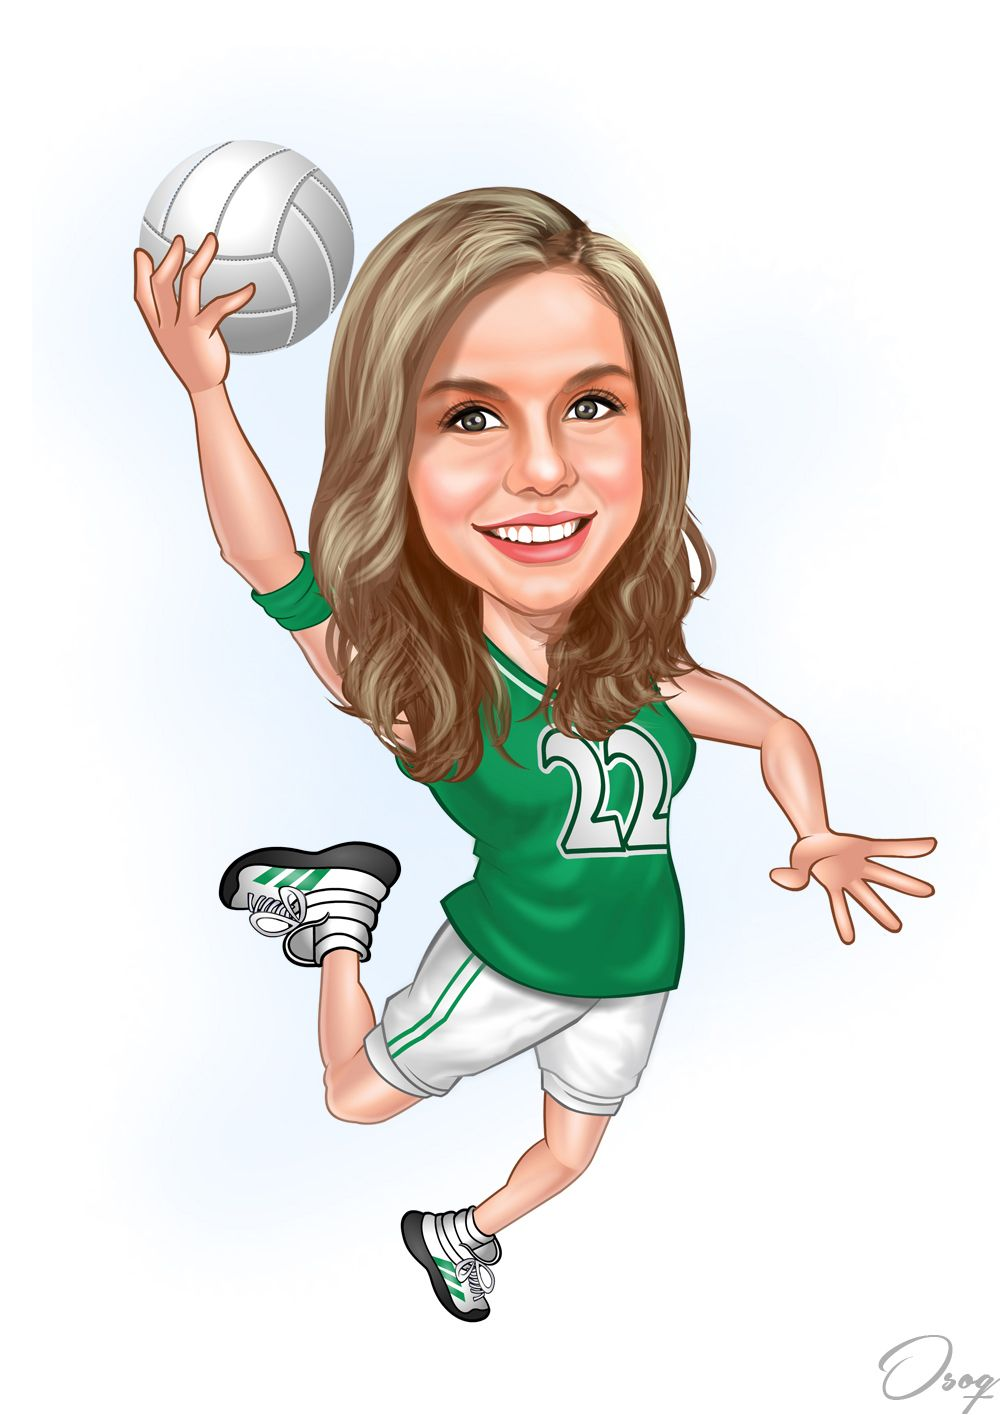 Girl Volleyball Cartoon Character Girl Cartoon Characters Girl Cartoon Cartoon Characters